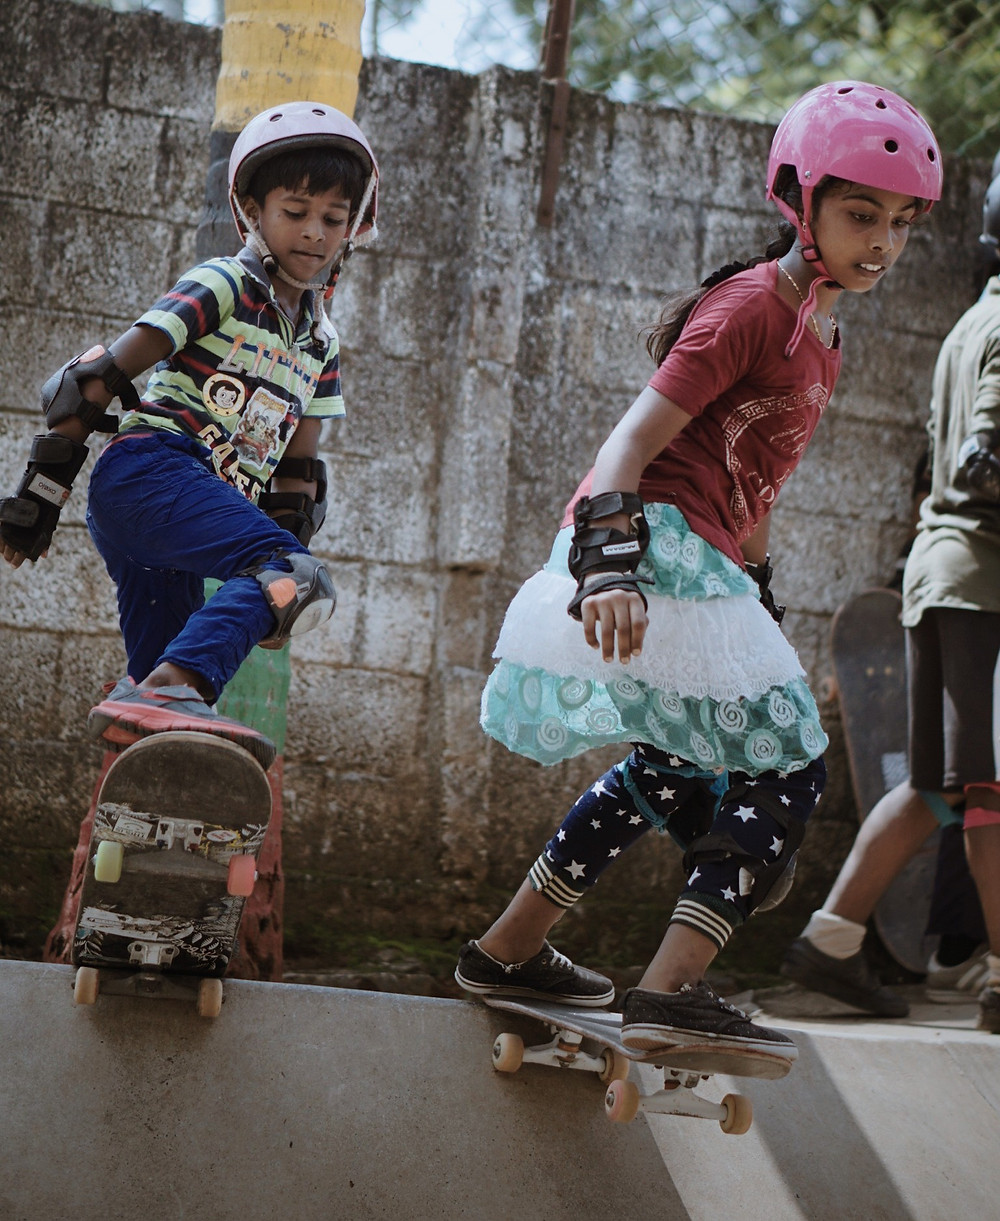 Achu and Vidya on ramp from SISP skate park. Pic Credit: Alwin John